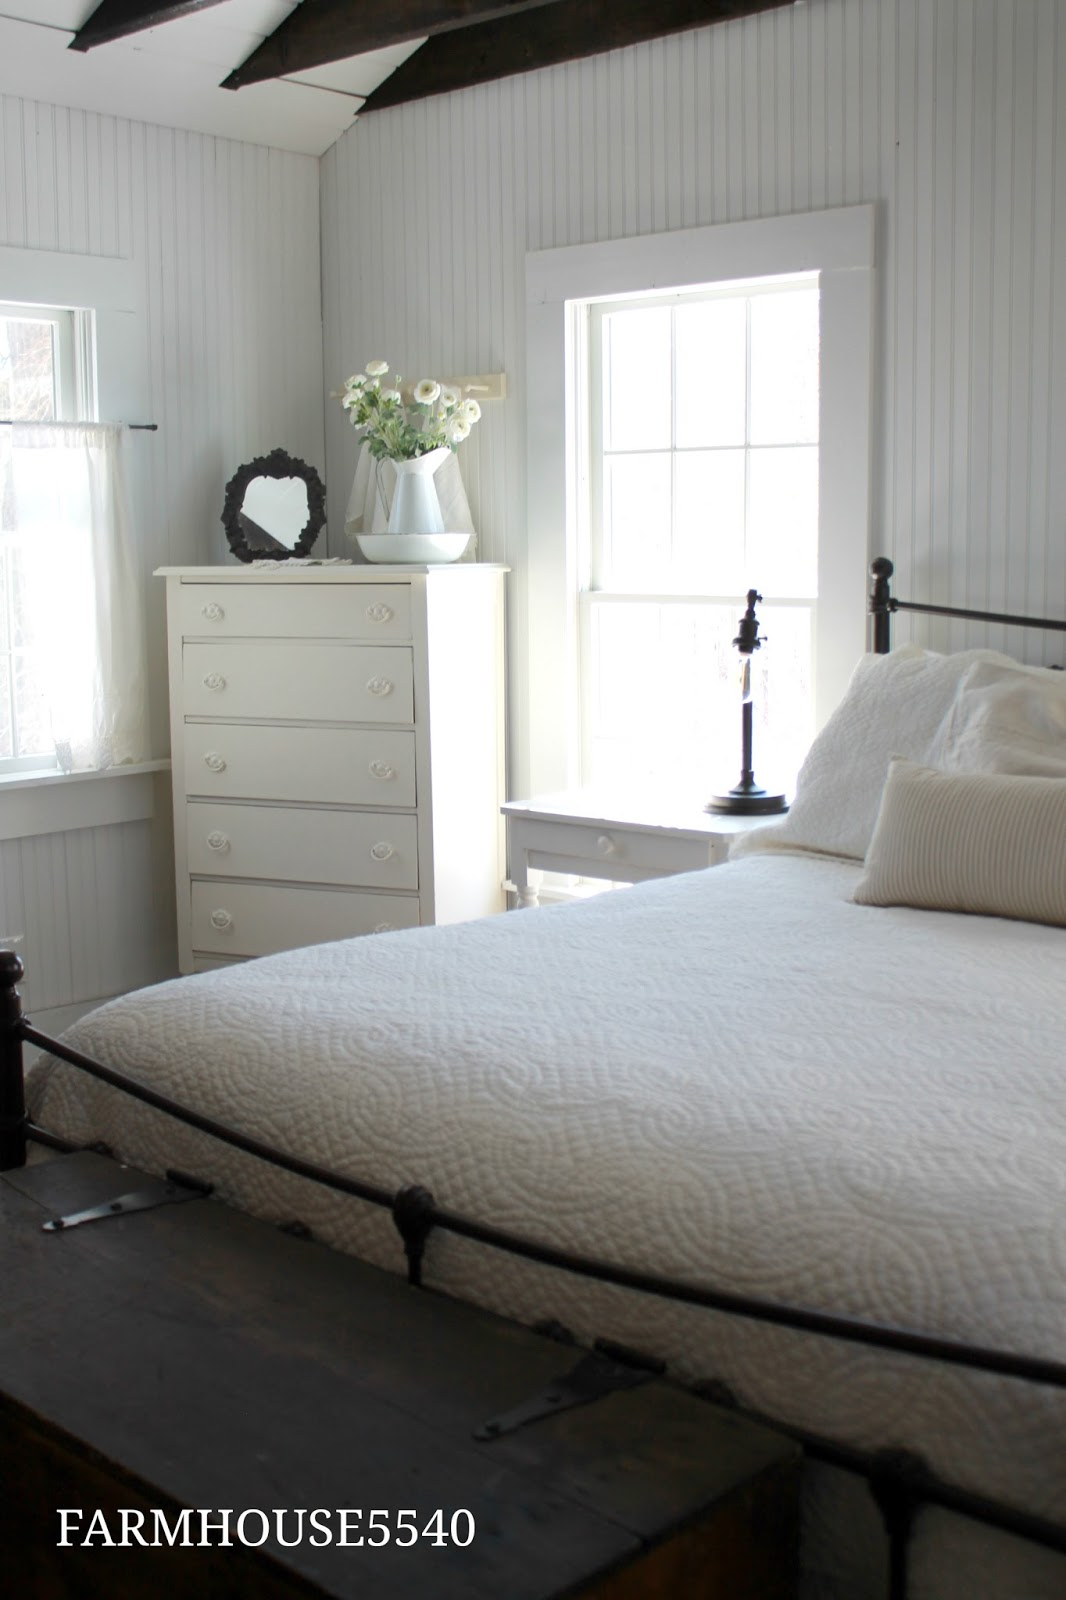 Delightful I Found Our Bed Frame On Wayfair.com. I Looked At Hundreds Of Beds Over  About A Six Month Long Period. I Was Having Trouble Finding One That Was  The Old ...